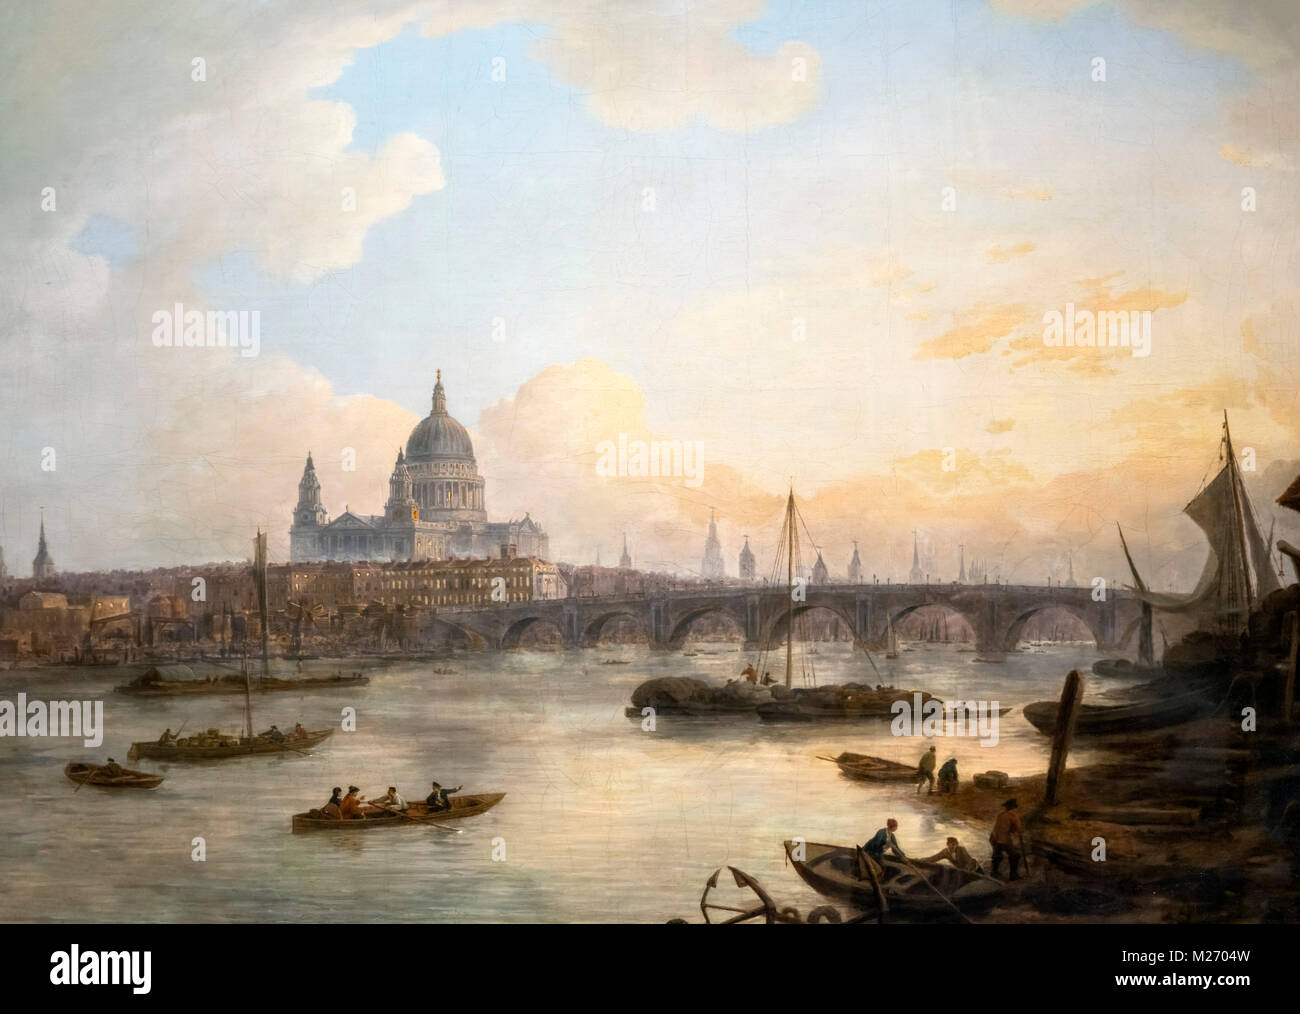 London in the 18th century. Blackfriars Bridge and St Pauls Cathedral by William Marlow (1740-1813), oil on canvas, - Stock Image